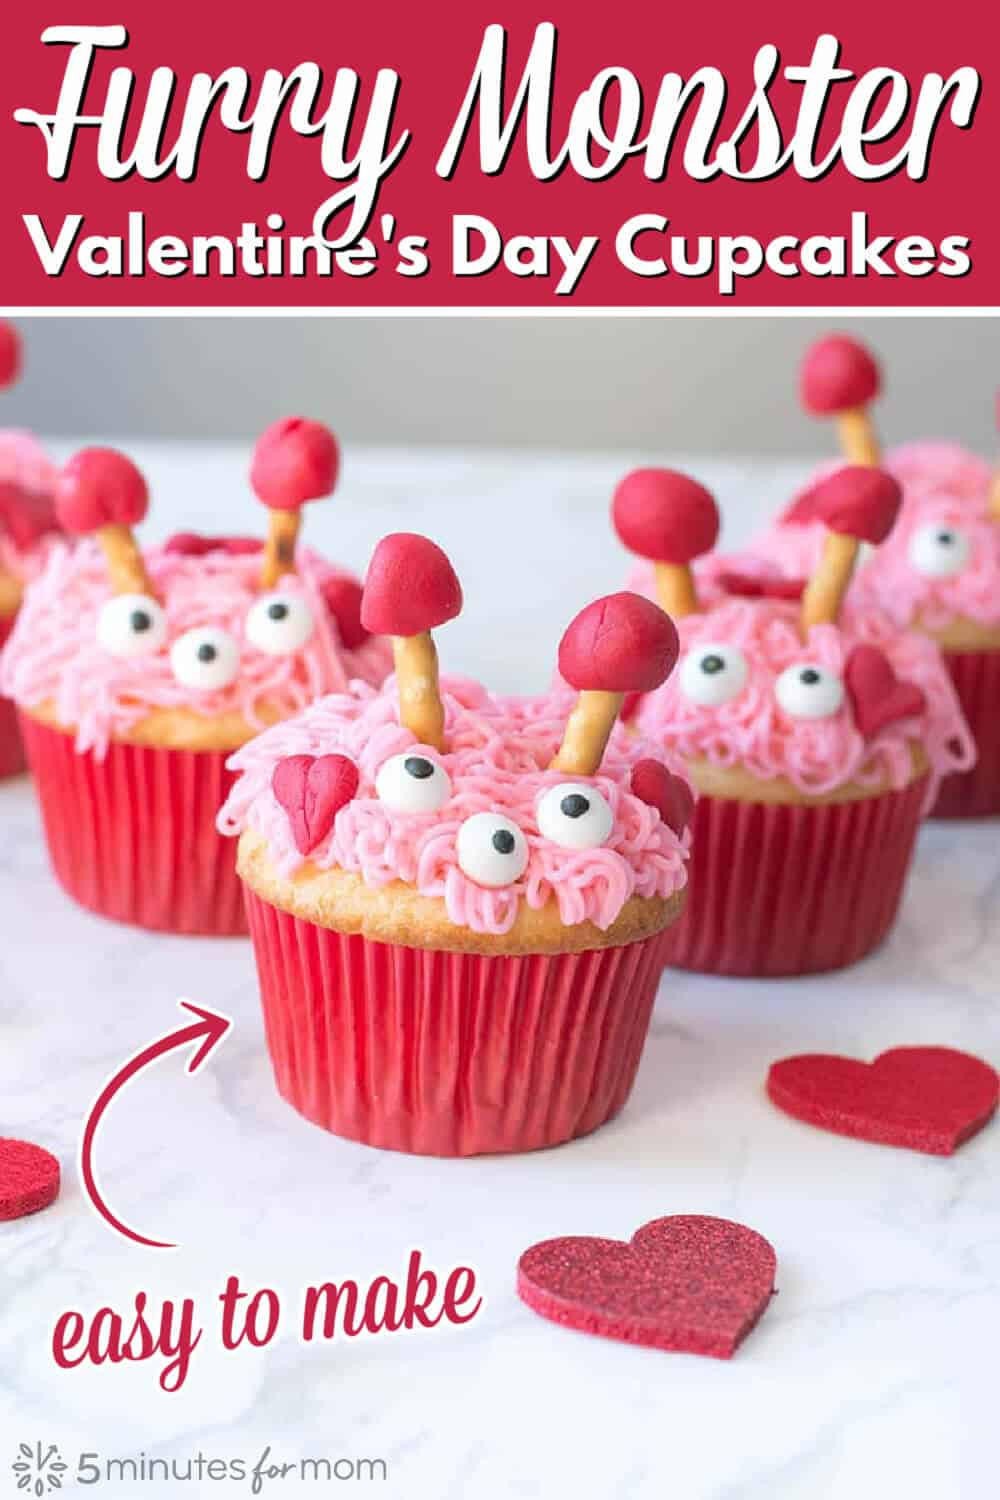 Valentines Cupcakes - Furry Monster